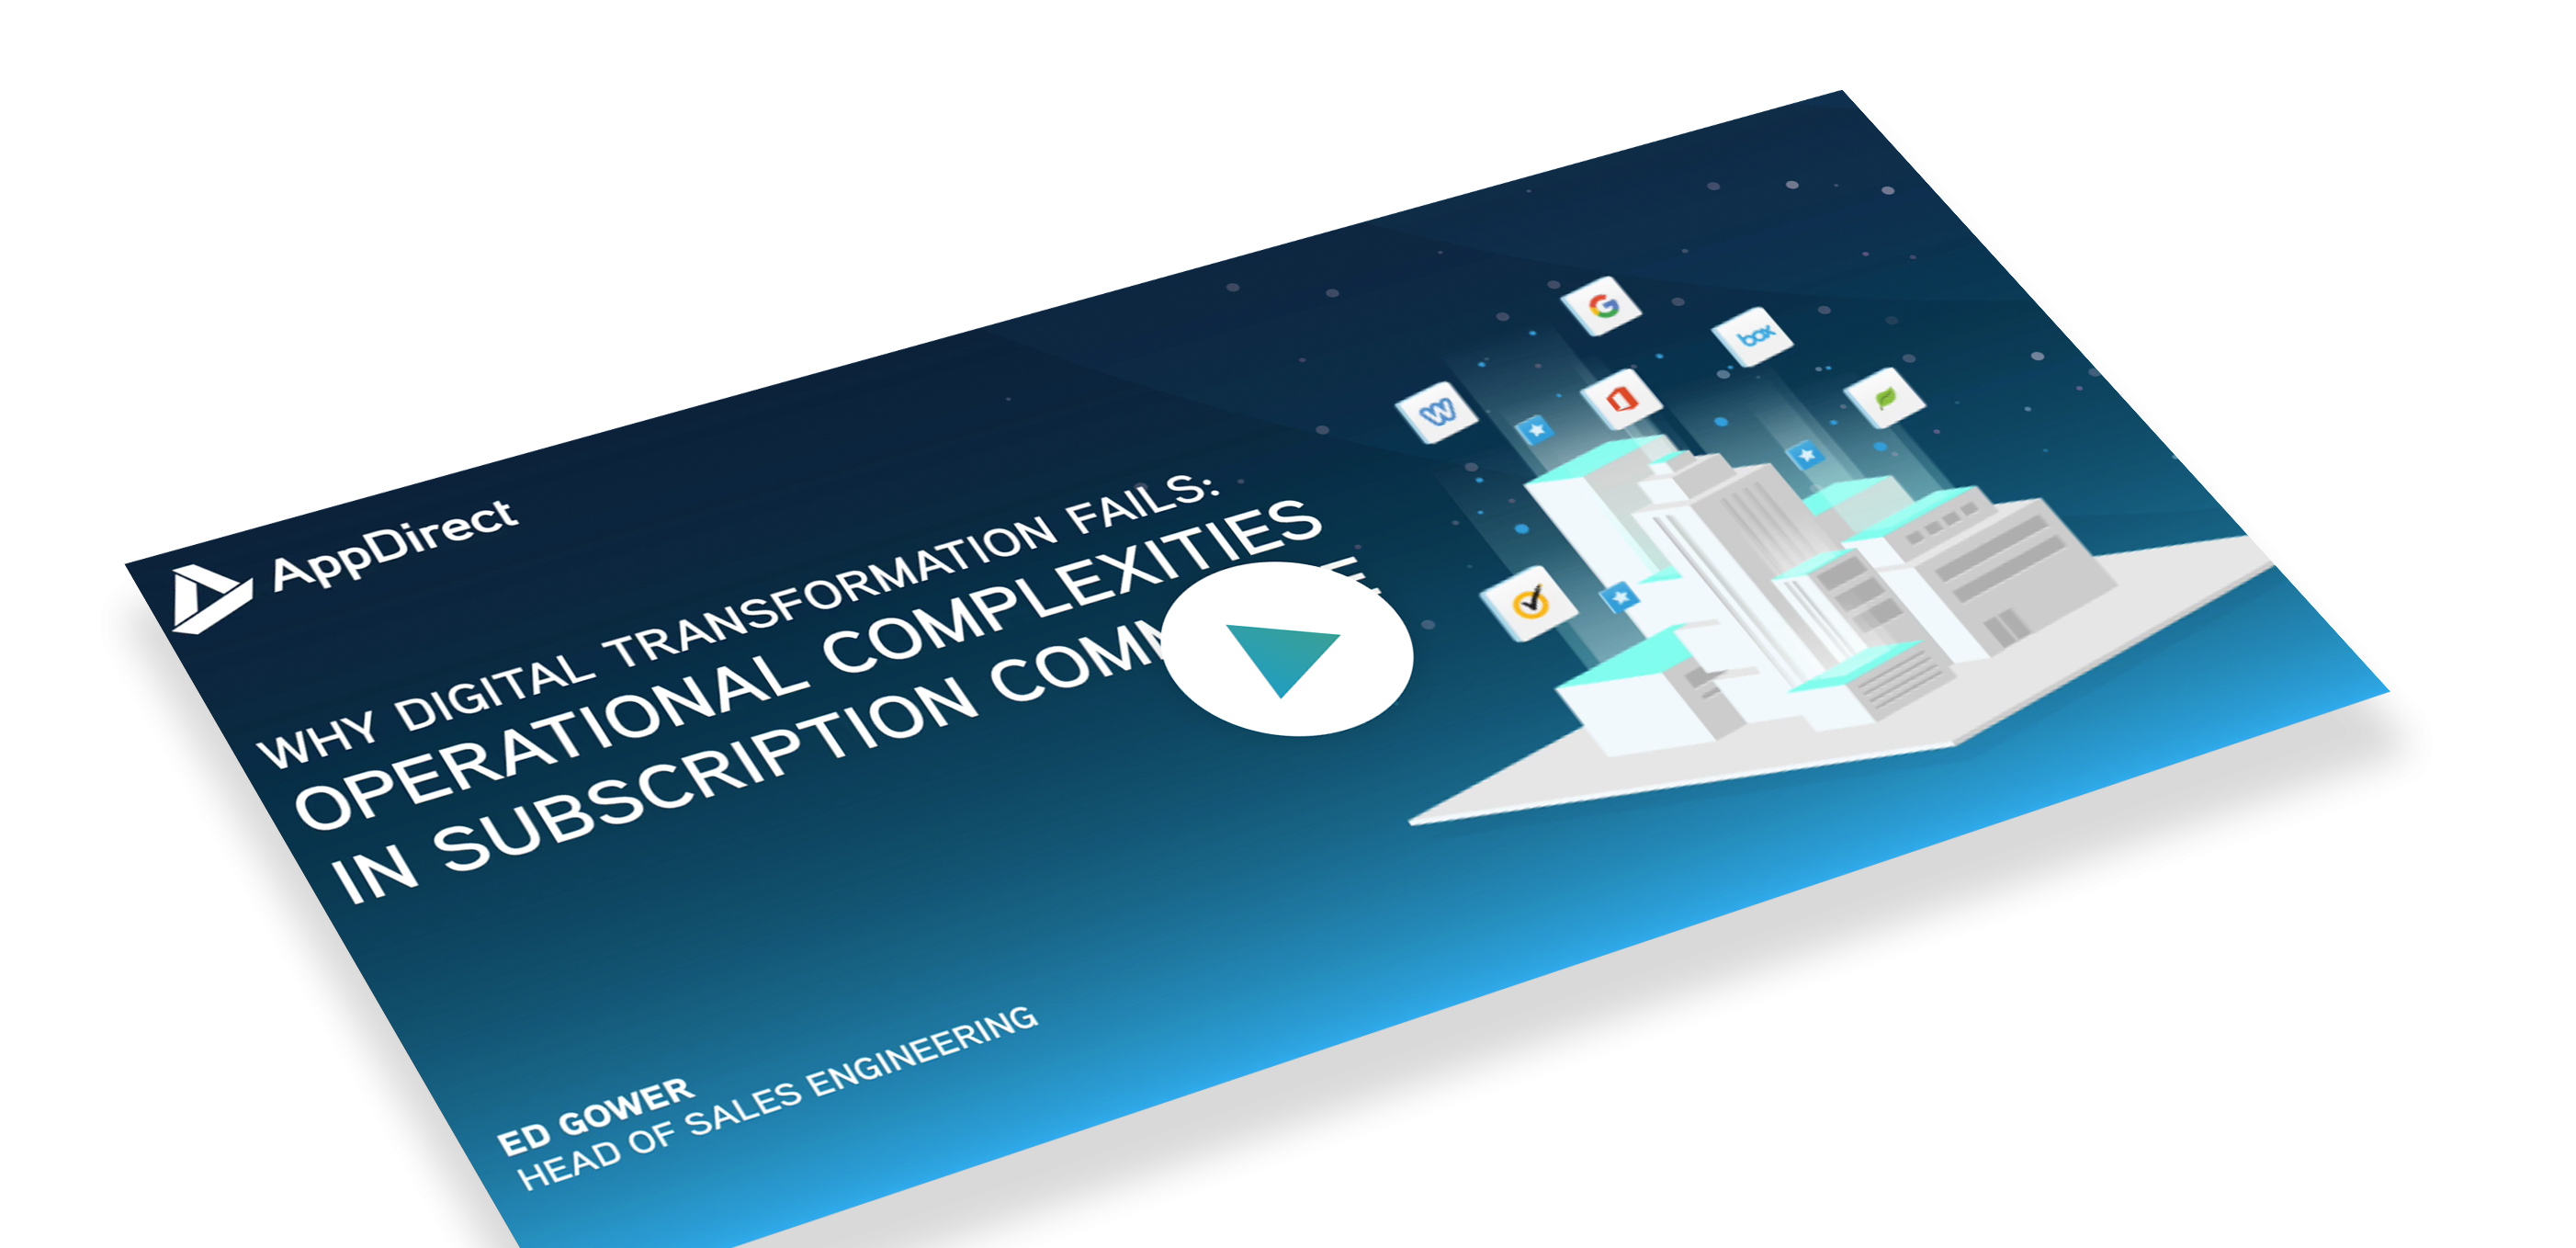 Why Digital Transformation Fails: Operational Complexities in Subscription Commerce